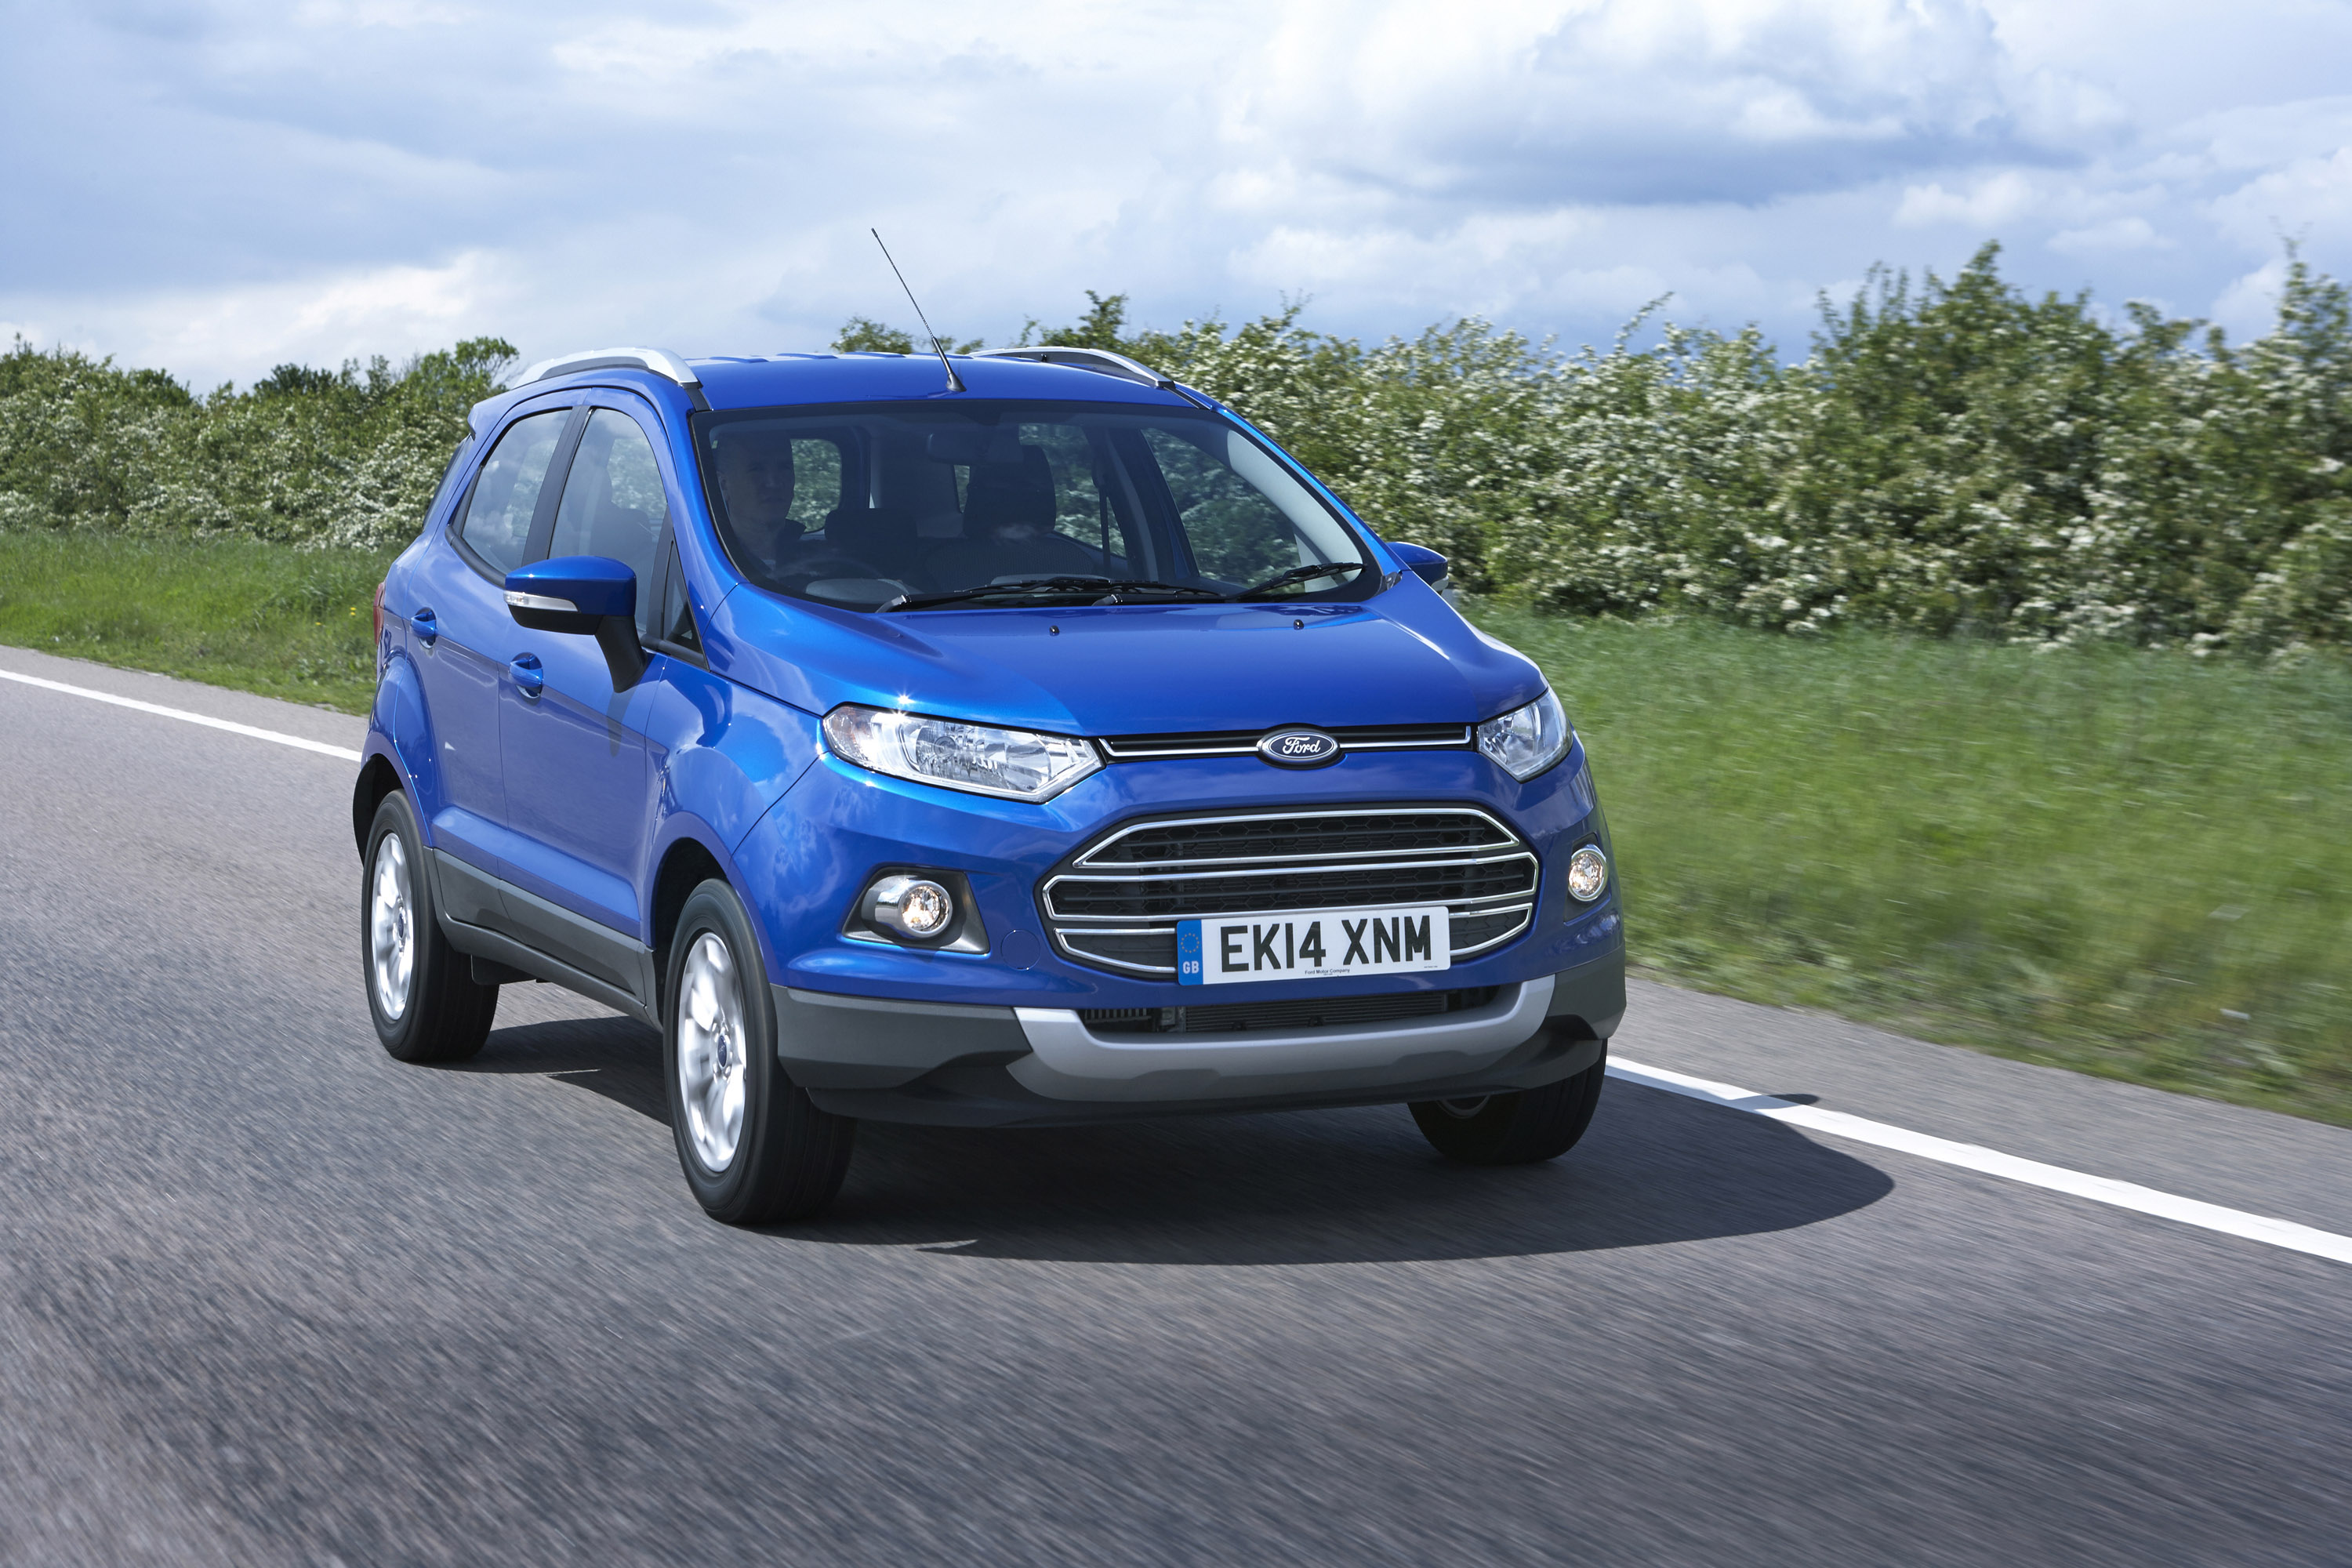 Image Result For Ford Ecosport Service Cost